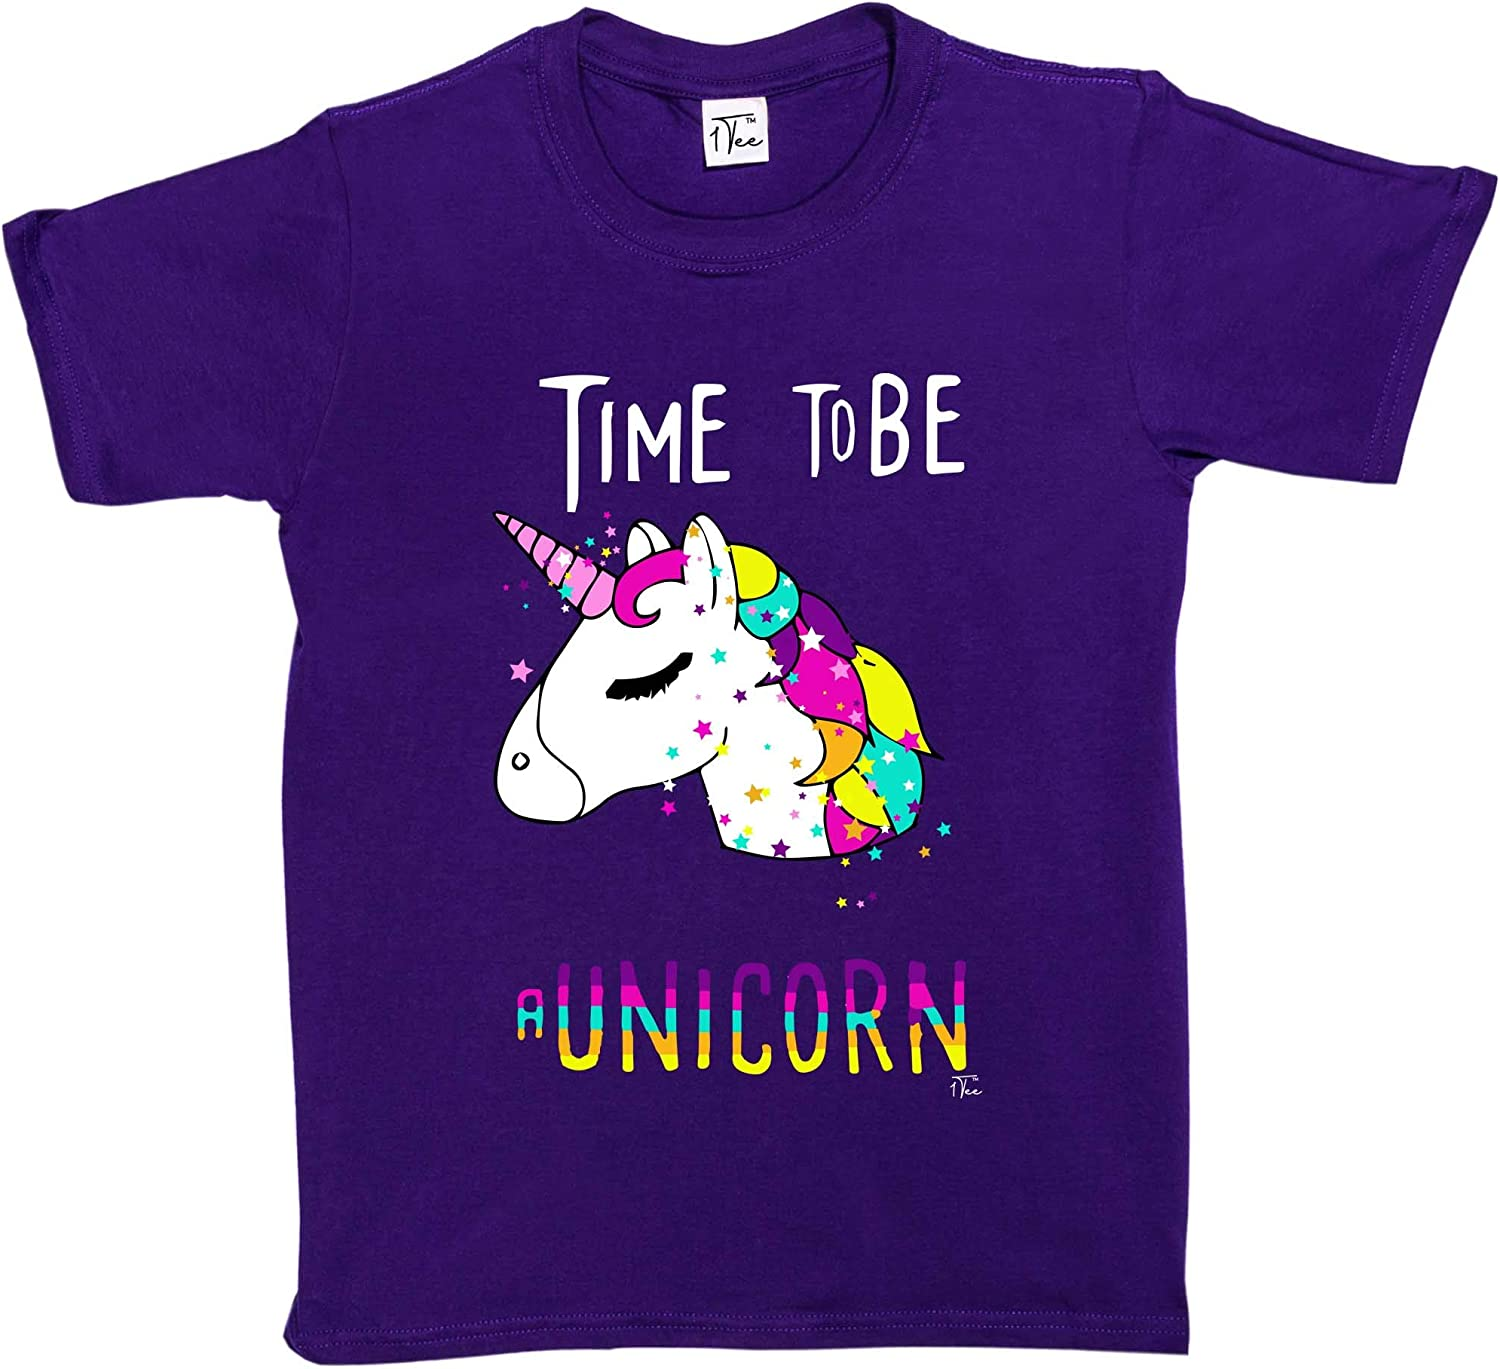 A Unicorn Magical T-Shirt 1Tee Girls Time to Be